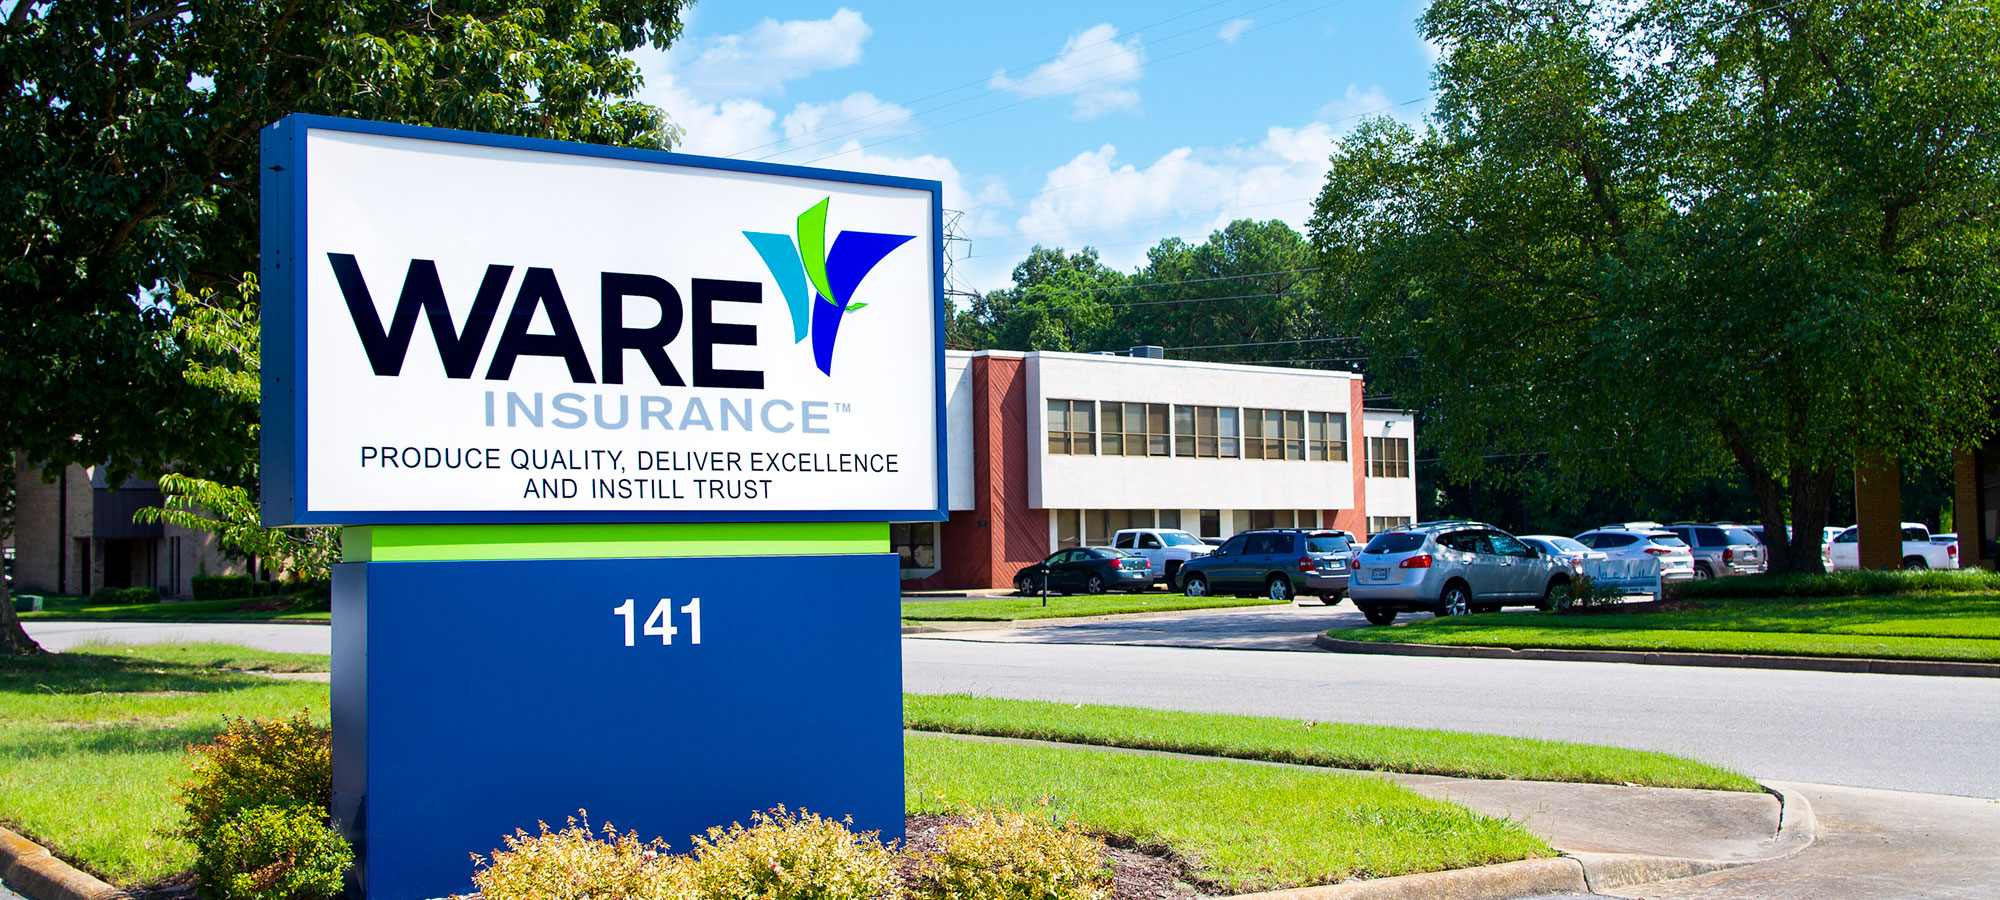 Ware Insurance sign